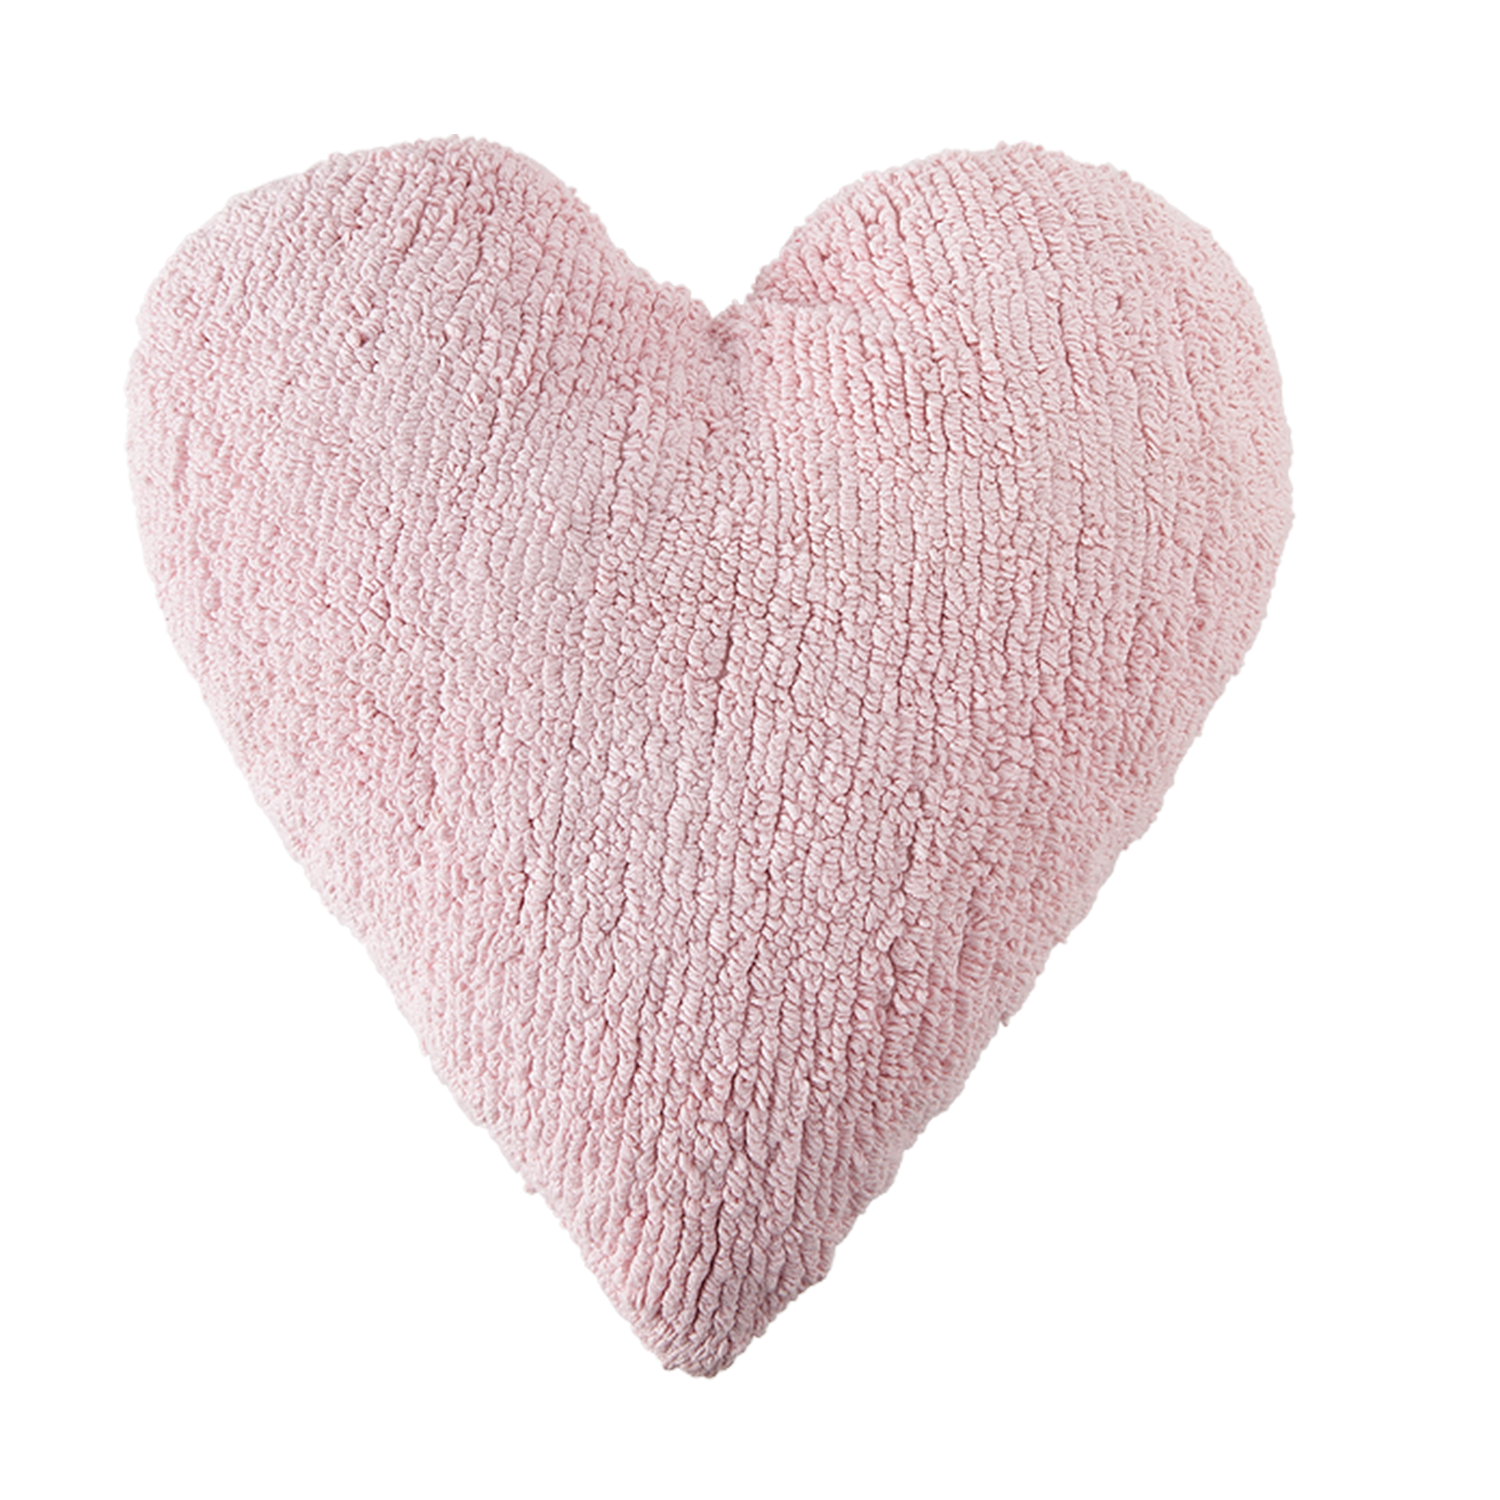 Lorena Canals, Heart Cushions